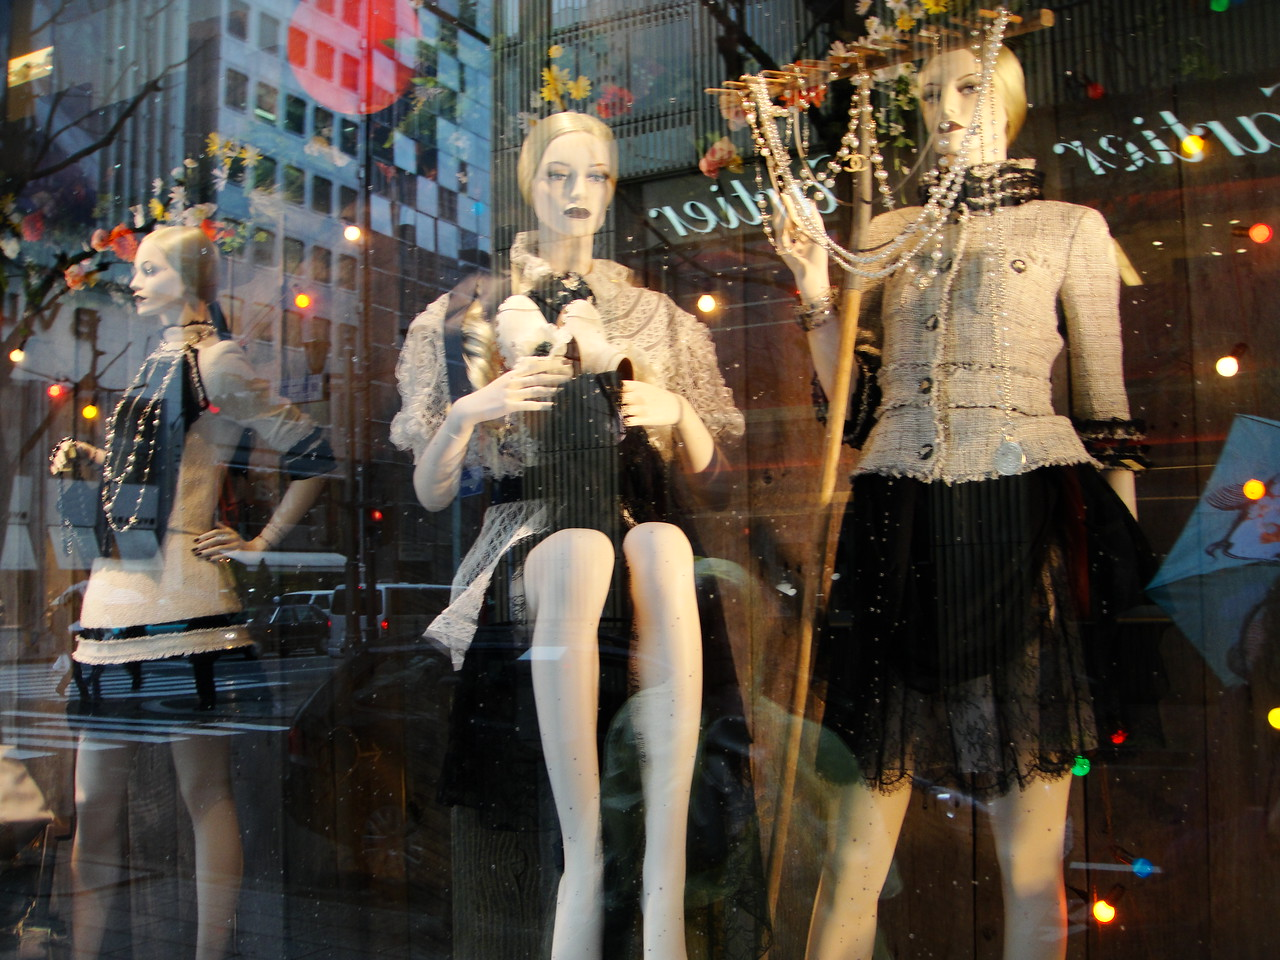 The shops were name brand stores.....Armani, Christan Dior, etc.  Clerks wore black suits and white gloves...purses at 3,500,000 yen ($35,000), watches at $65,000....